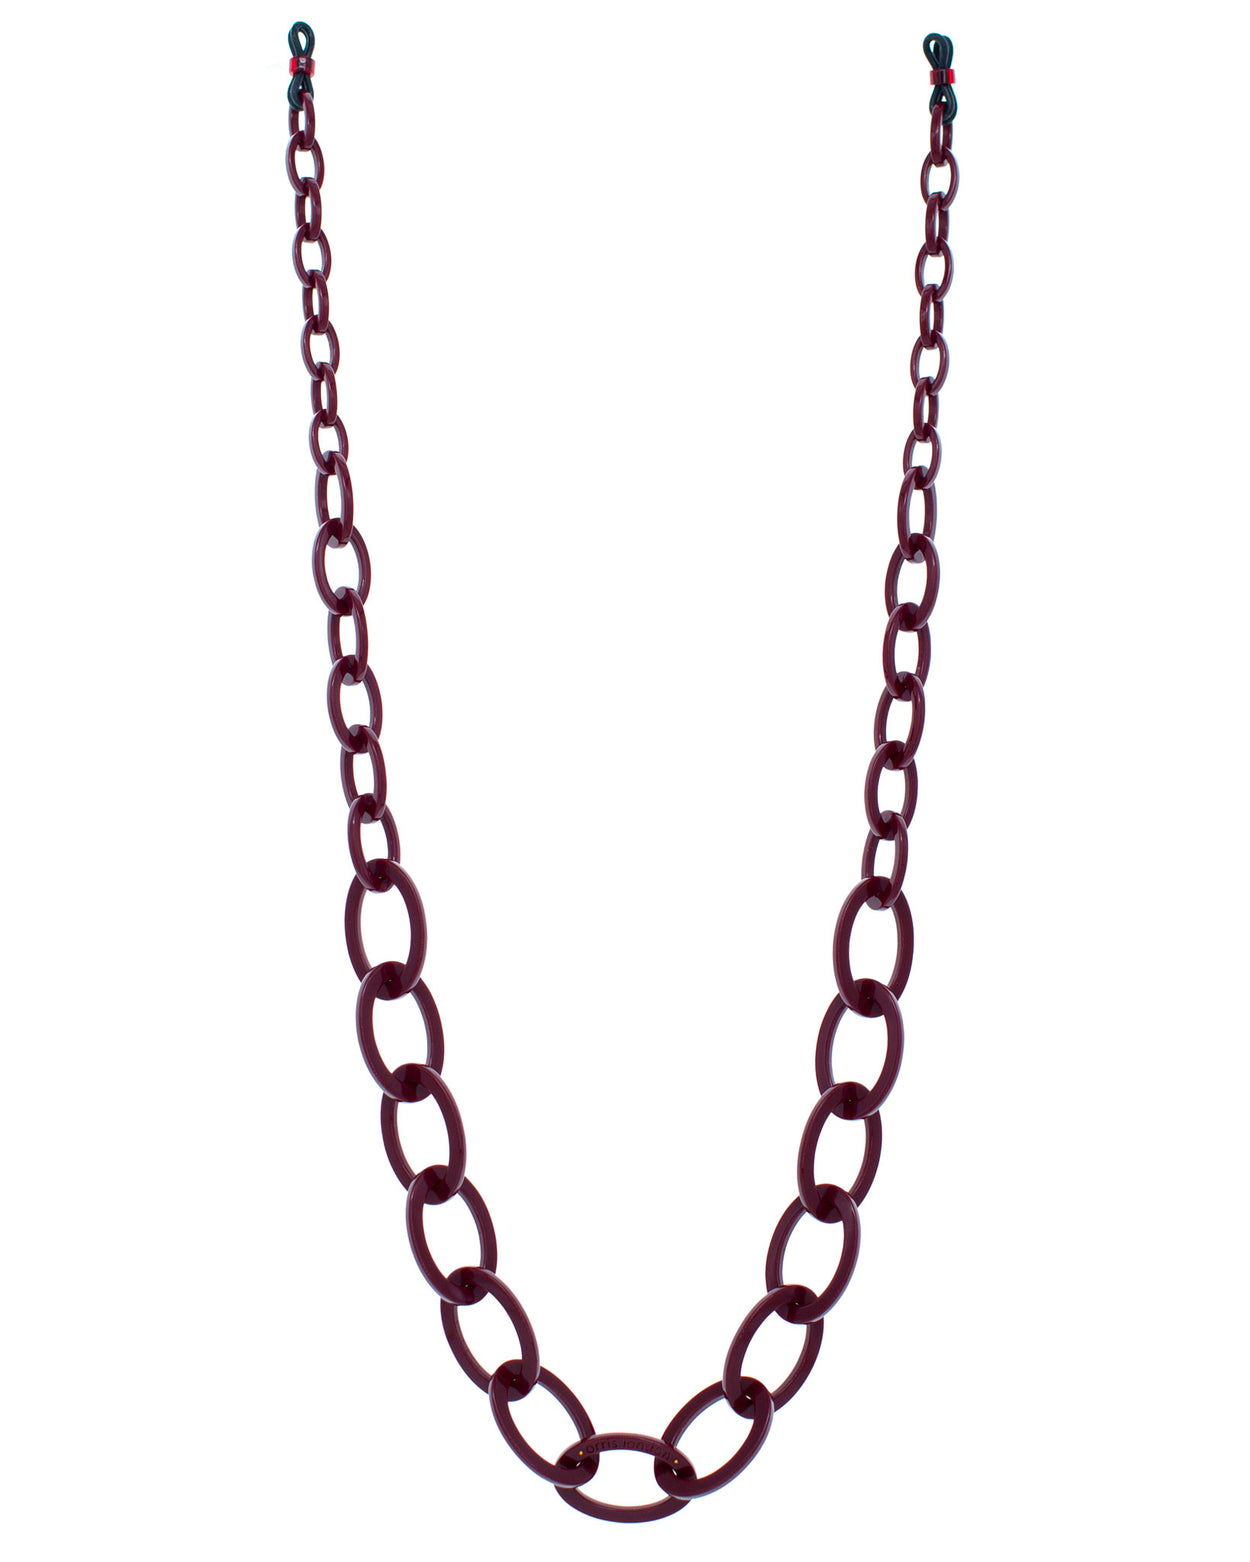 Smiley Chain | Burgundy Red | Glasses Chain | RASSIN SHEN